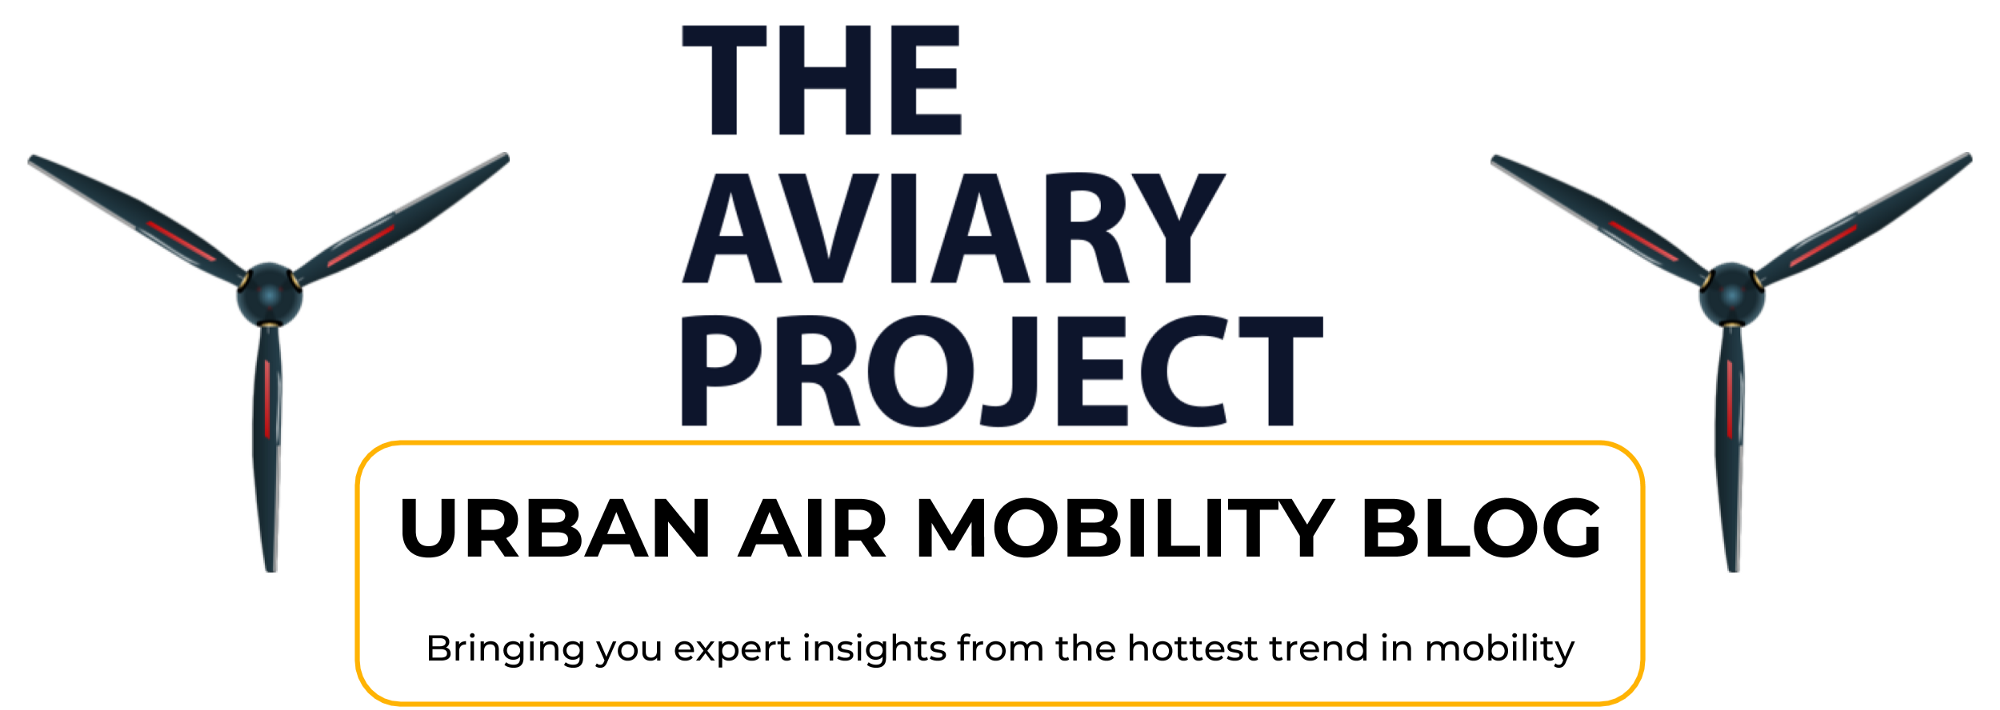 The Aviary Project